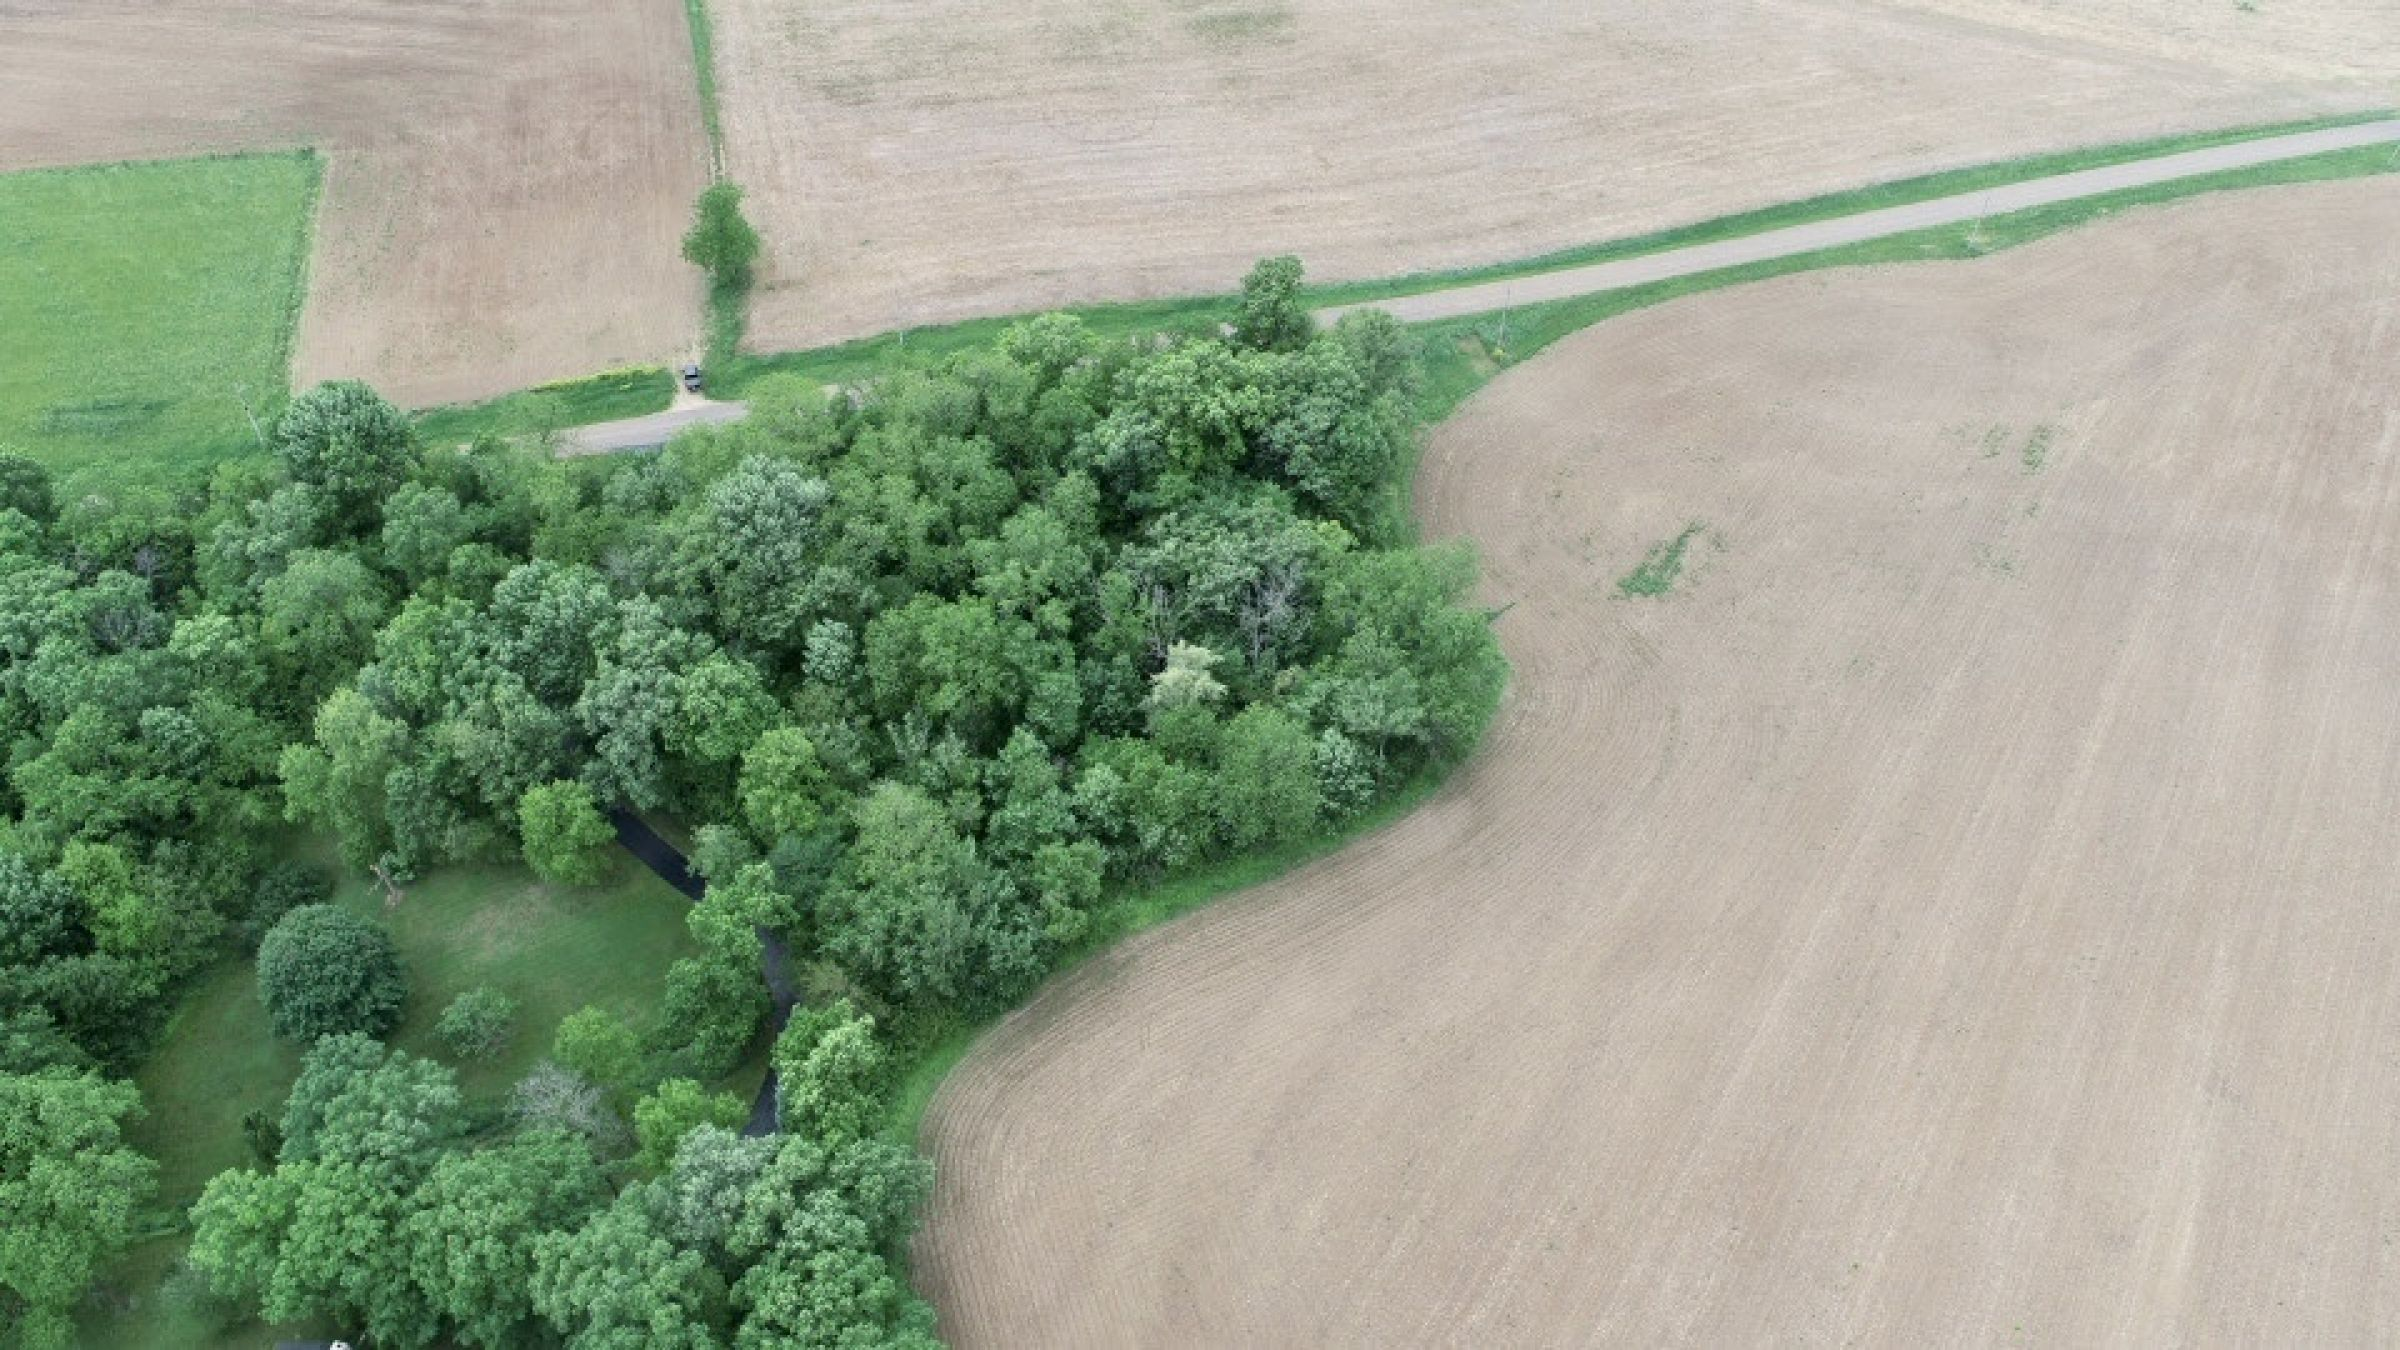 land-lafayette-county-wisconsin-1-acres-listing-number-15559-6-2021-05-28-184447.jpg